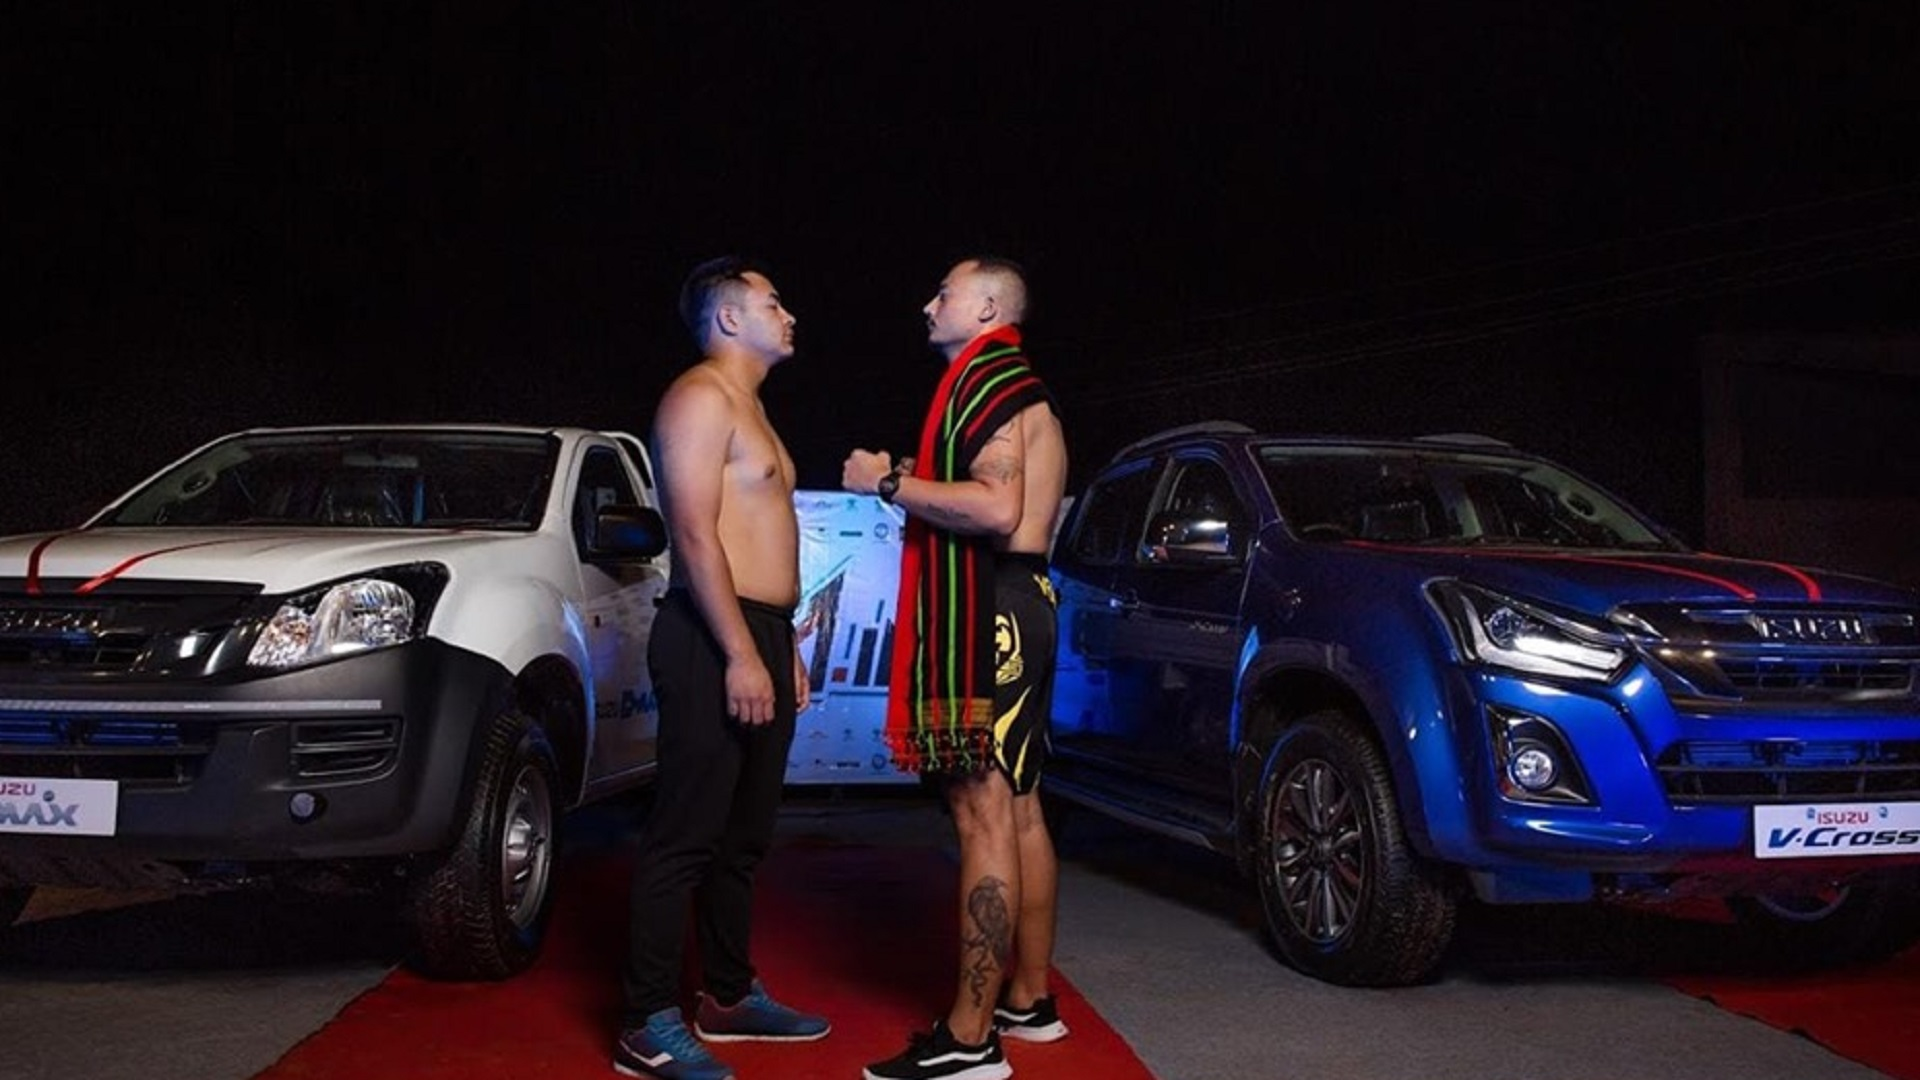 X1 International Fight Night Dimapur: Here are the complete results